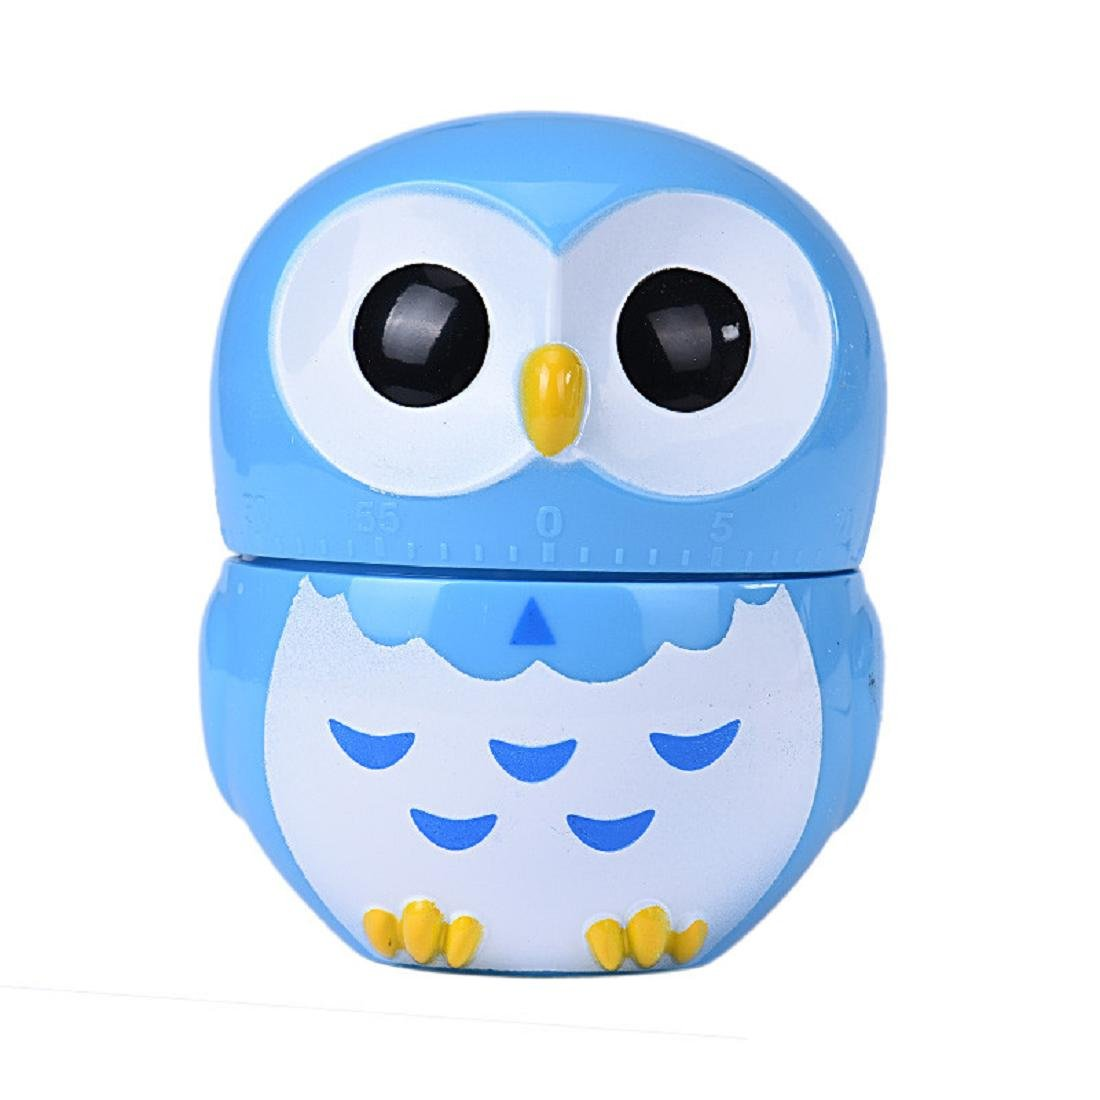 Coromose Owl Timer Kitchen 60 Minute Cooking Mechanical Home Decoration (Blue)